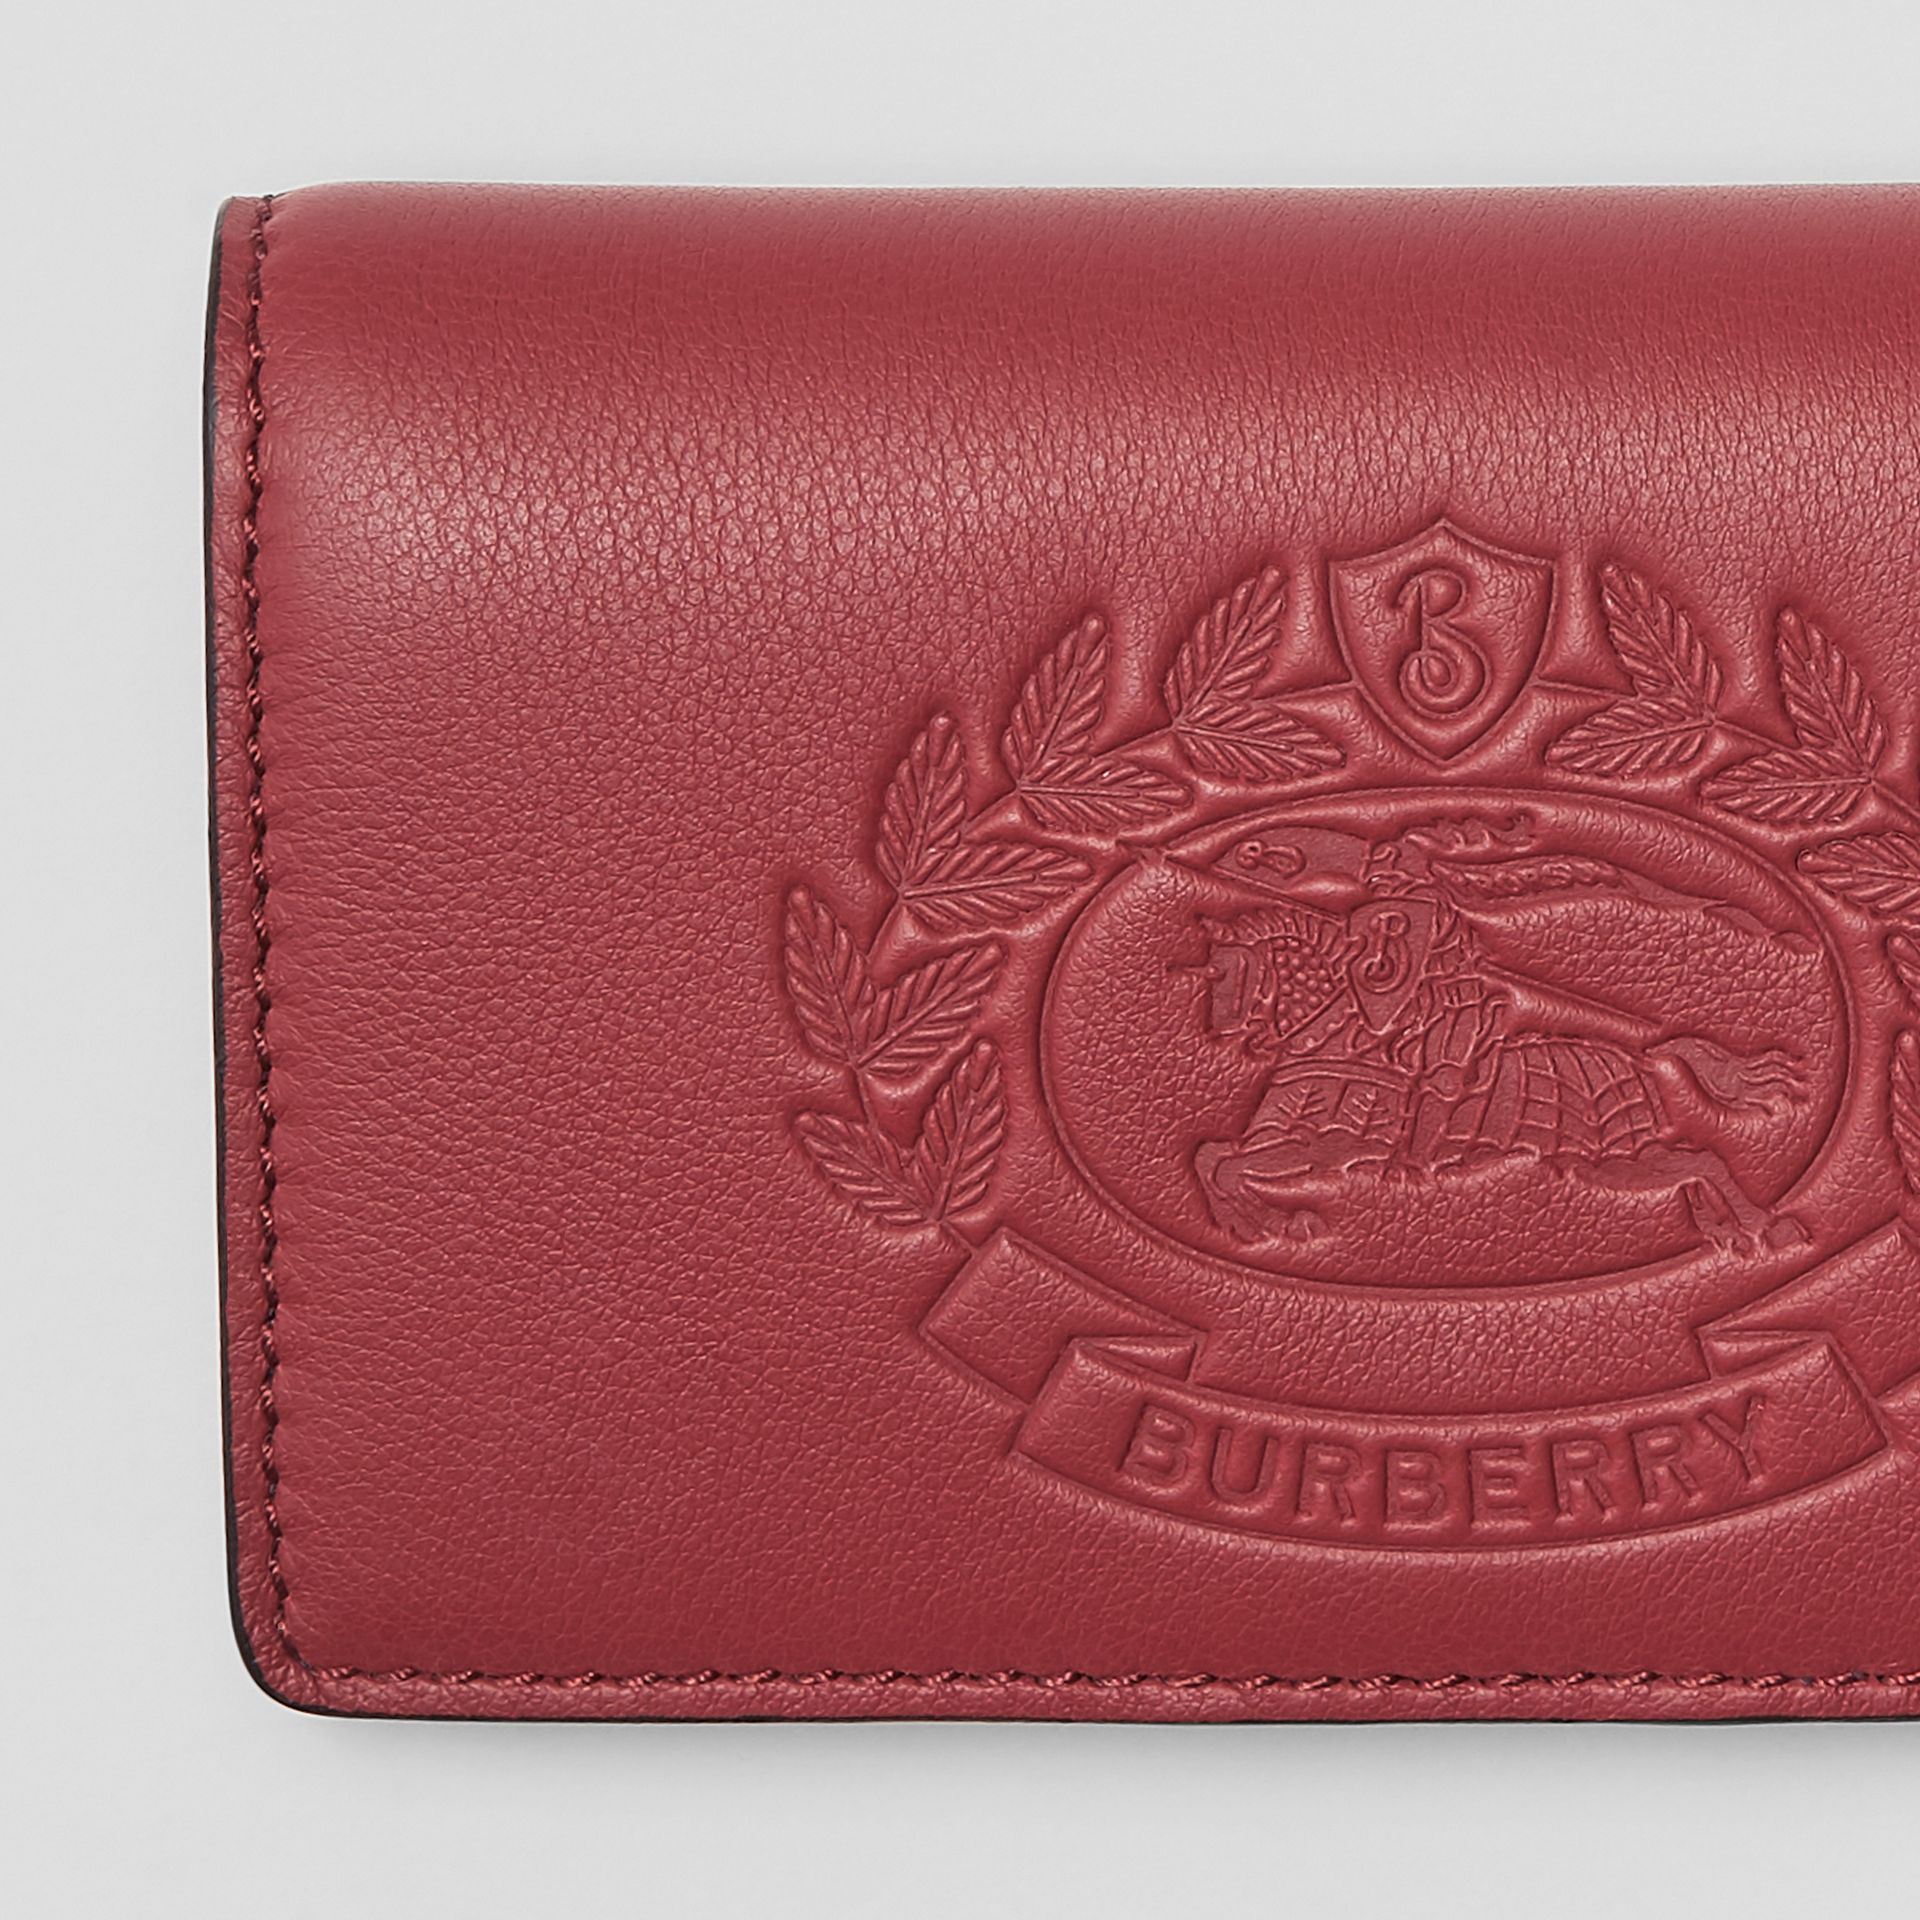 Small Embossed Crest Two-tone Leather Wallet in Crimson - Women | Burberry Australia - gallery image 1